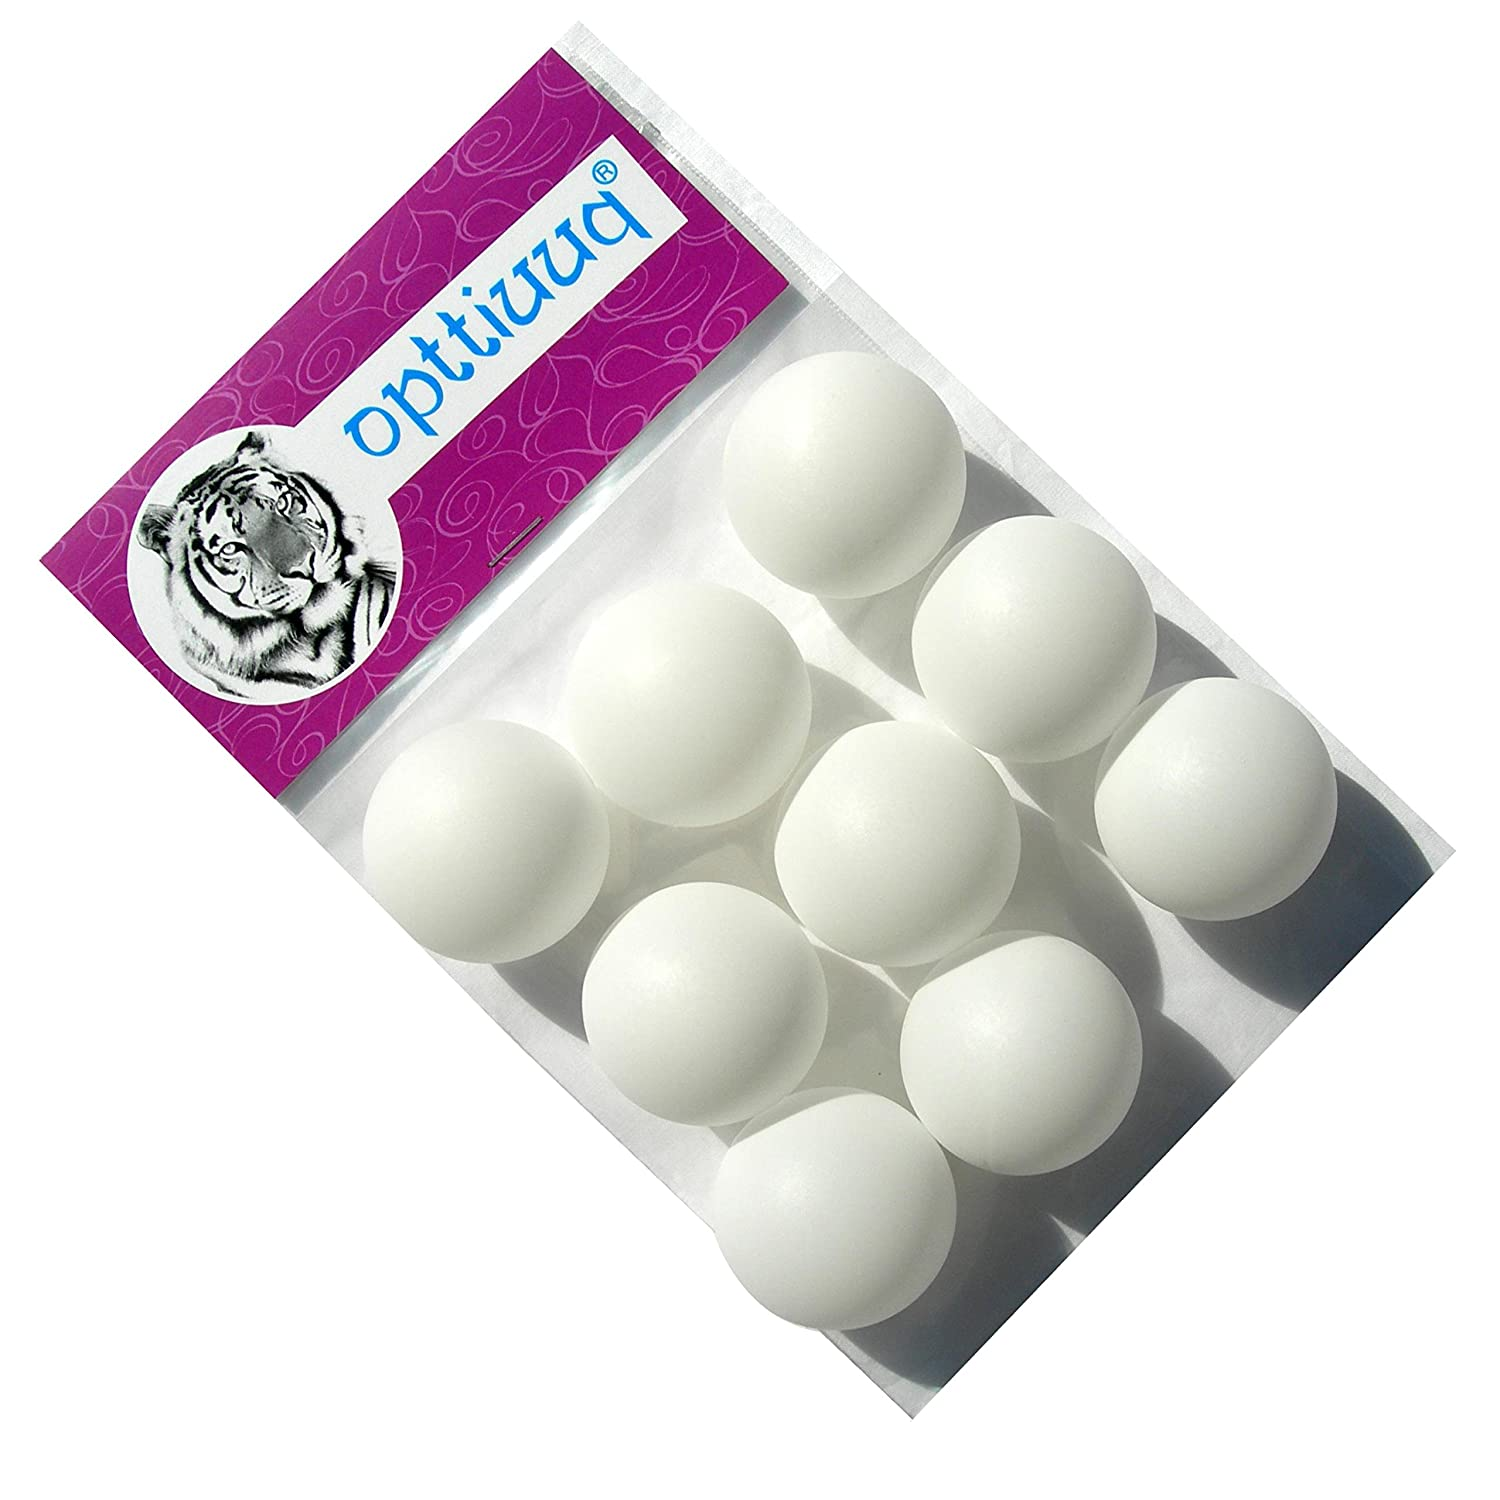 9 x Practice Quality Opttiuuq Qvu Plain White (No Logo) Table Tennis Balls. 40mm. Multipack